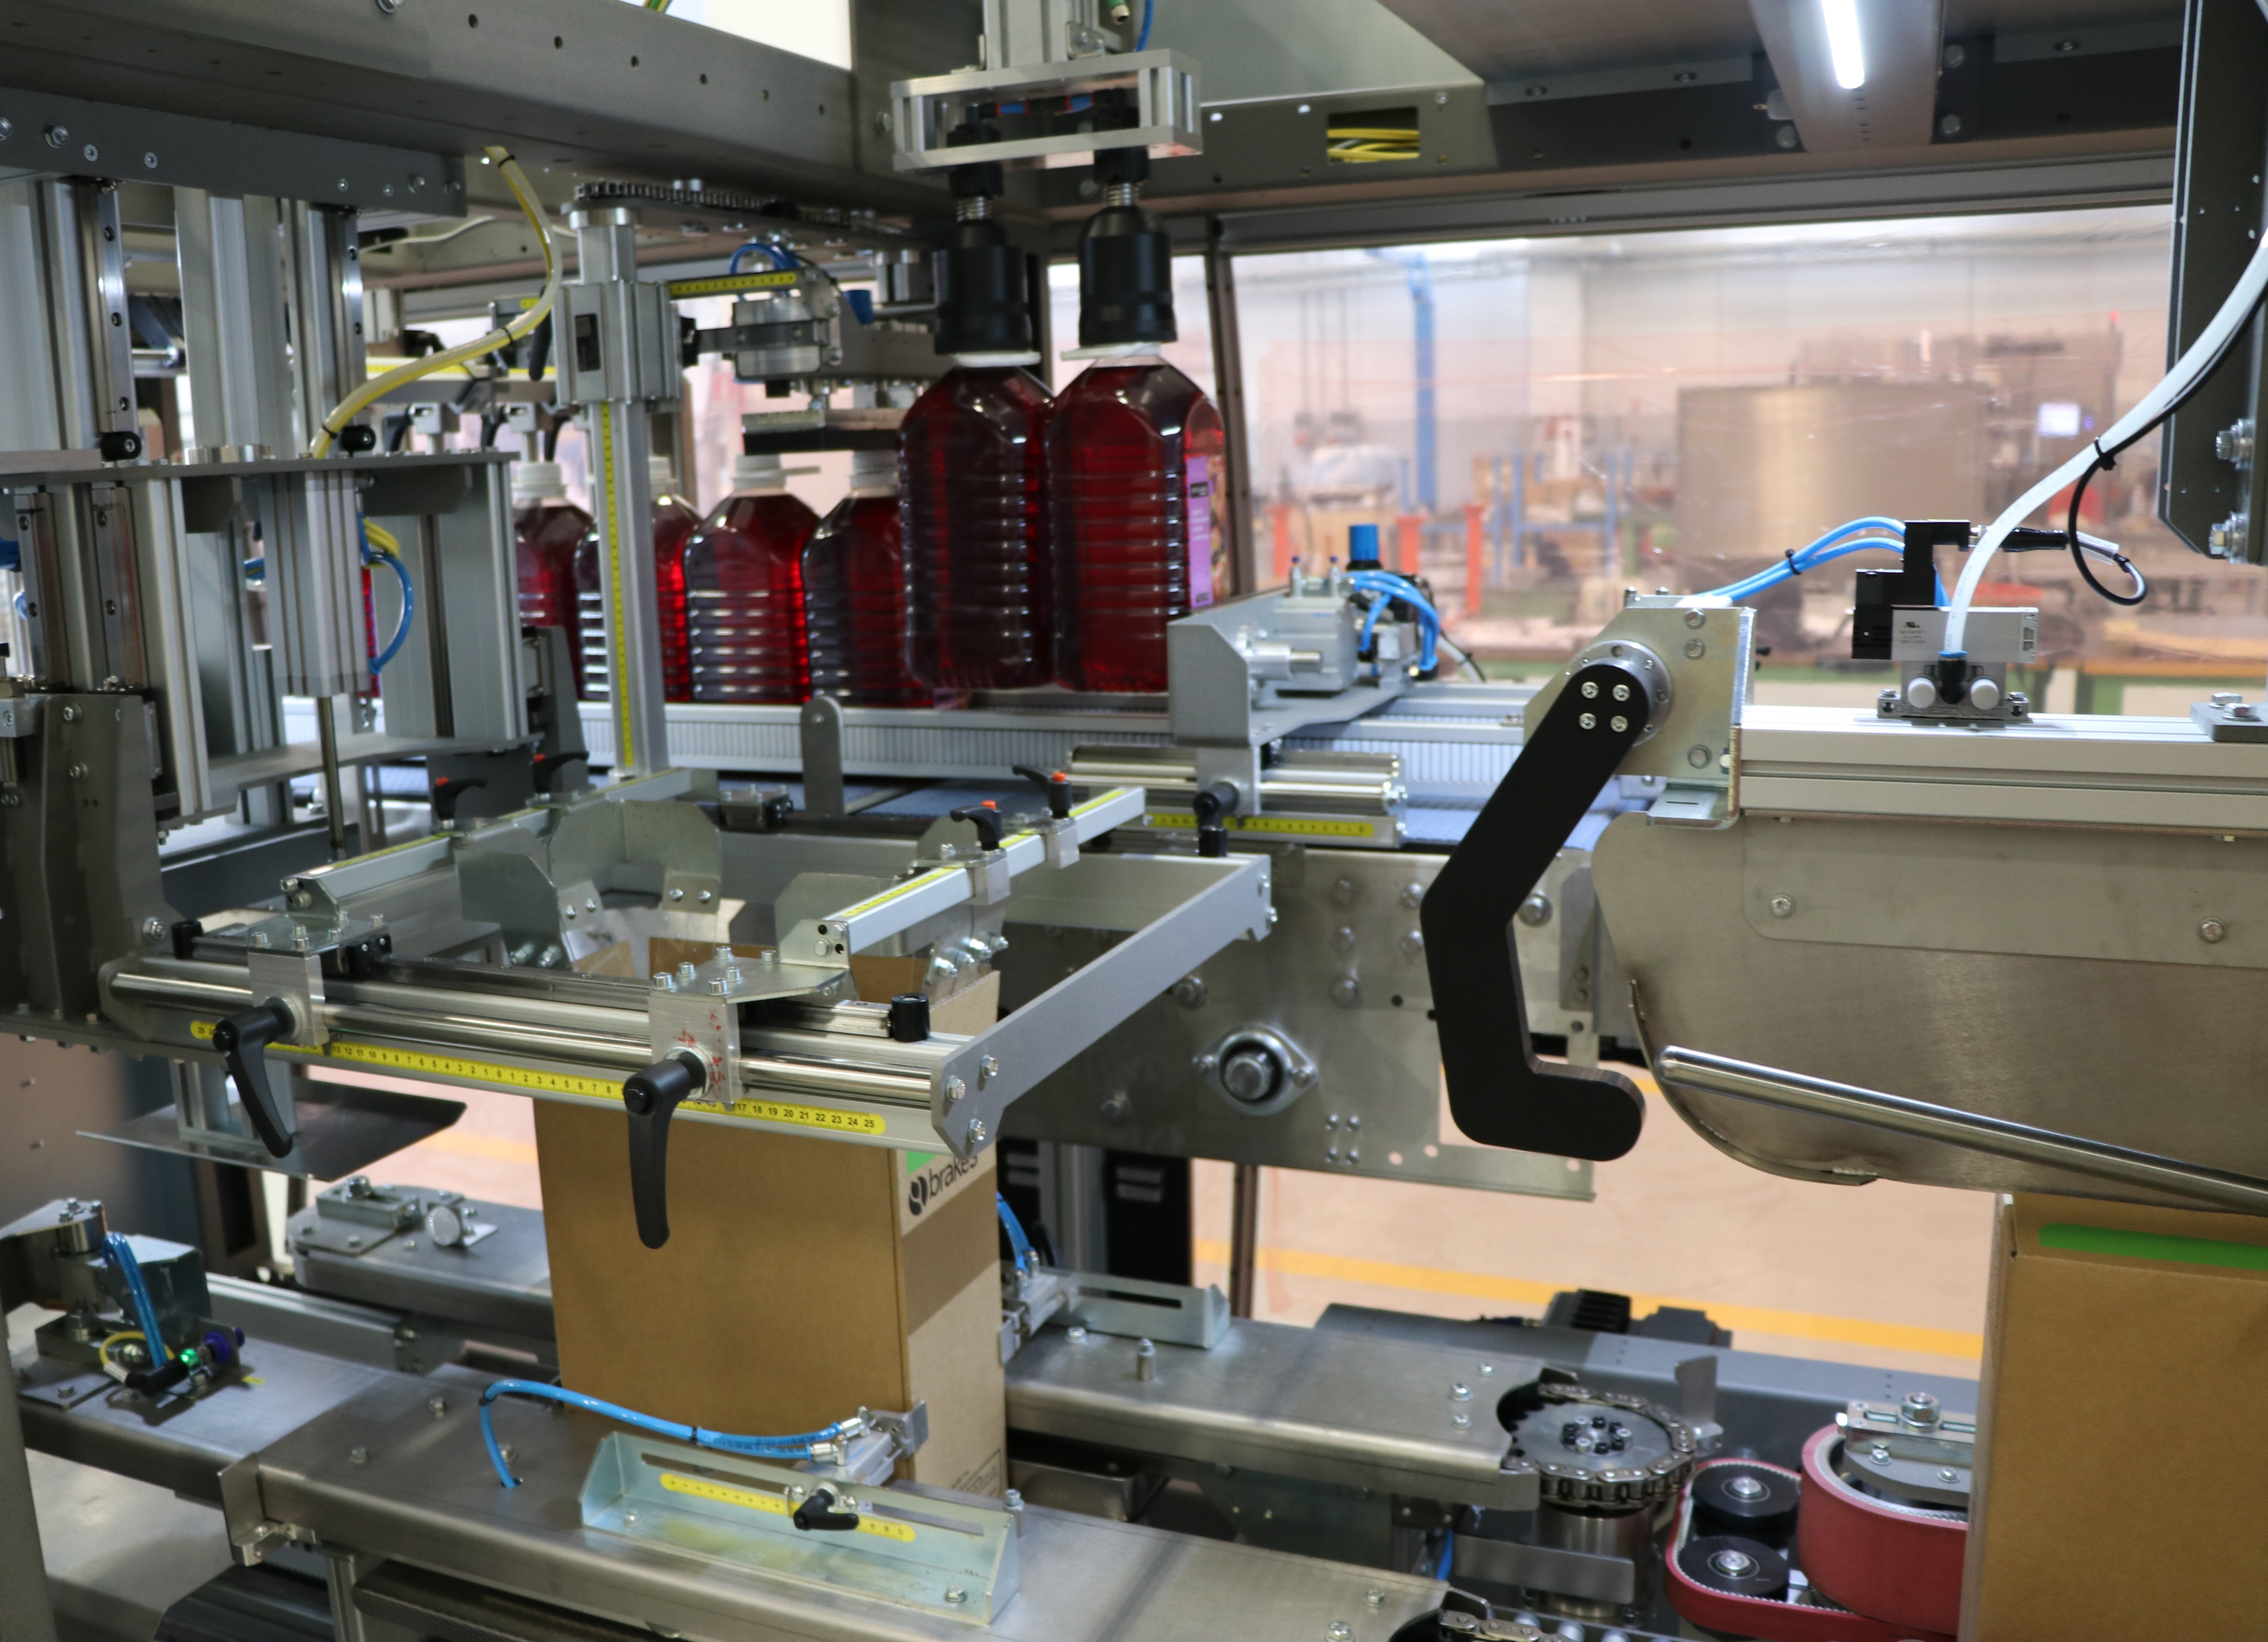 Monobloc case packer with pick & place system for RSC boxes